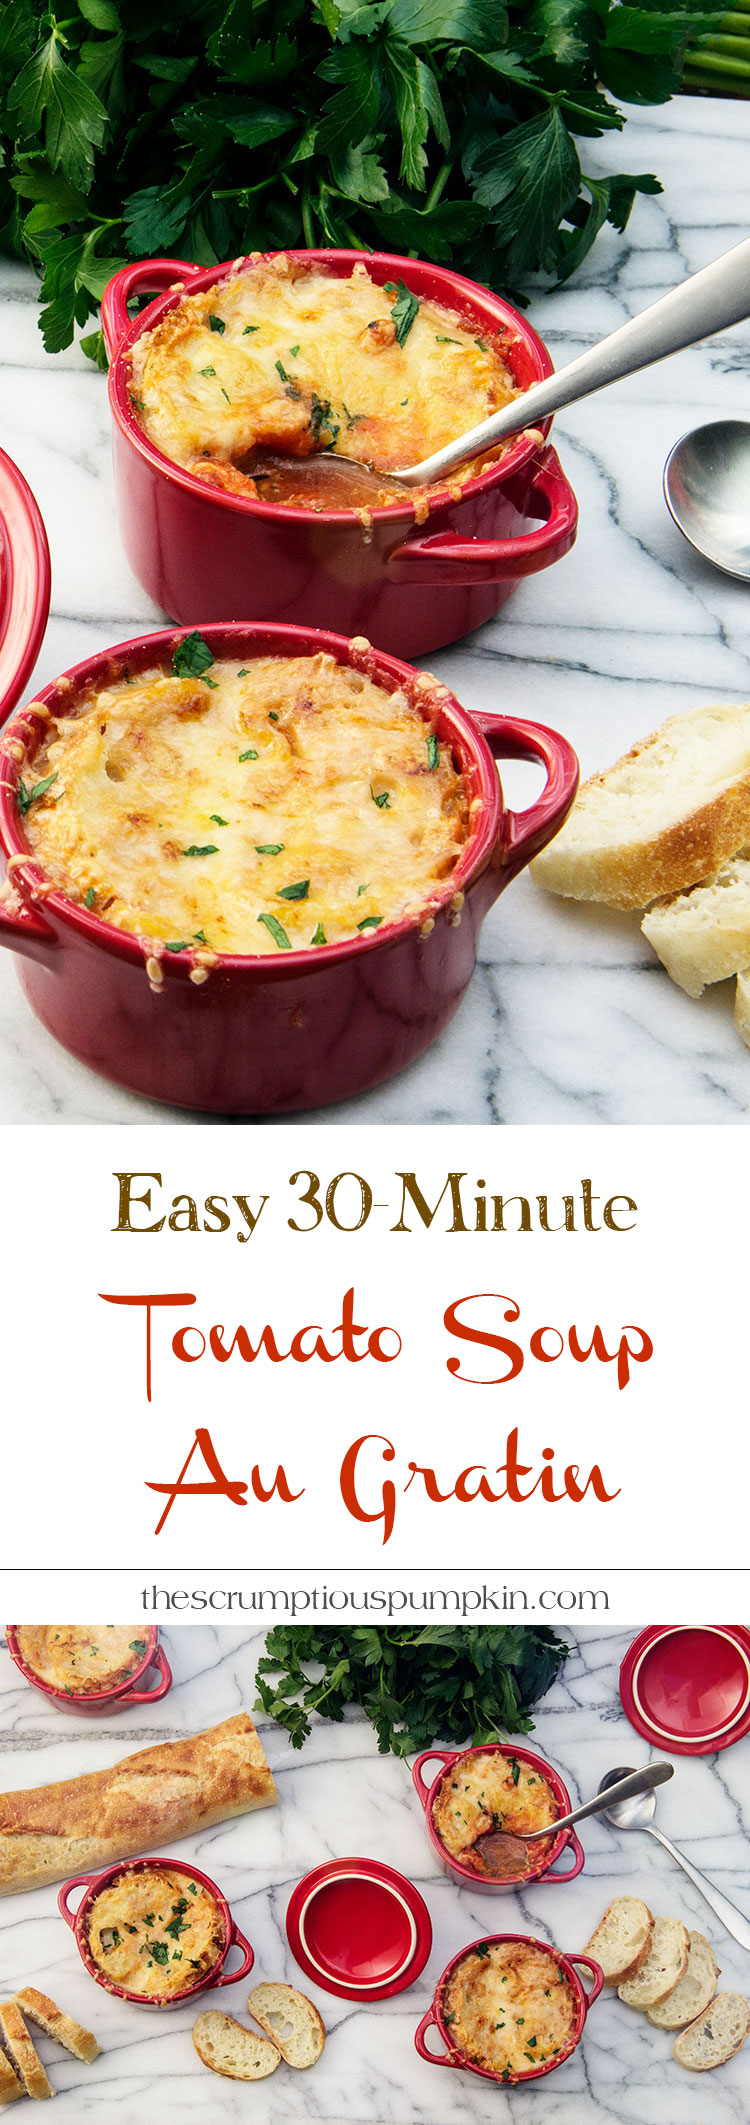 Easy-30-Minute-Tomato-Soup-Au-Gratin-with-Toasted-Baguette-and-Cheddar